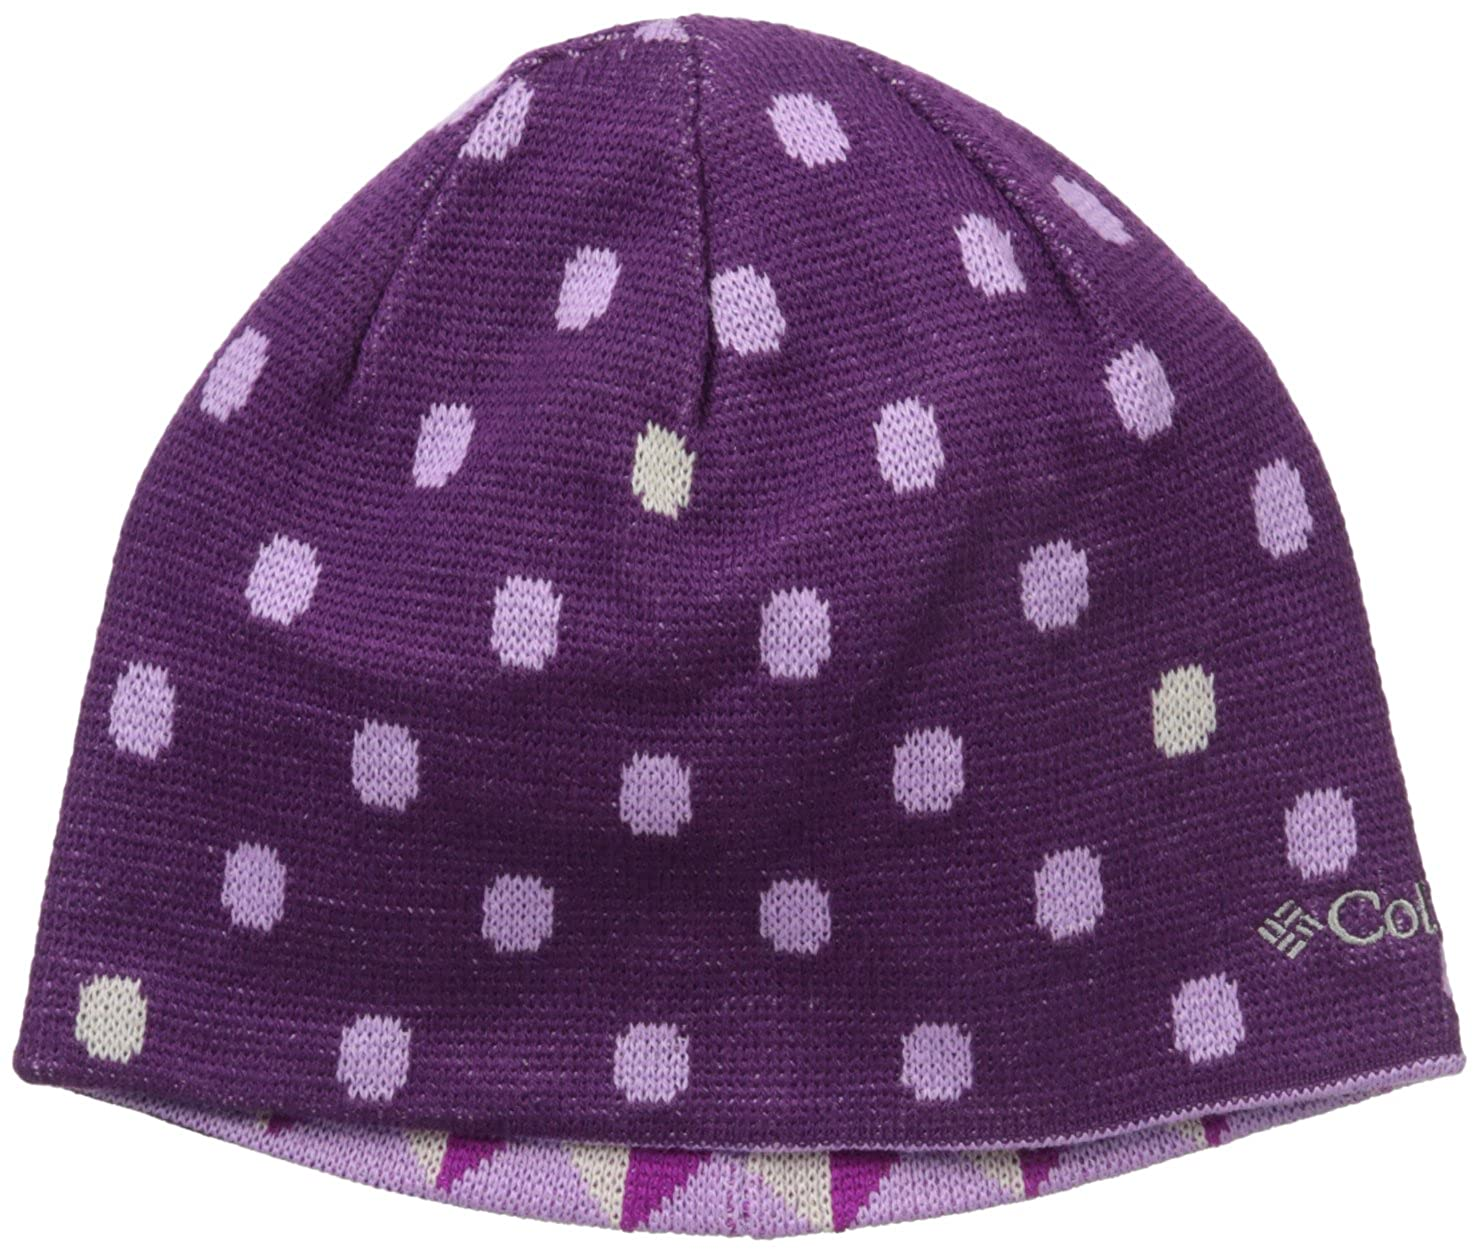 Columbia Girls' Toddler Urbanization Mix Beanie 1570691-1